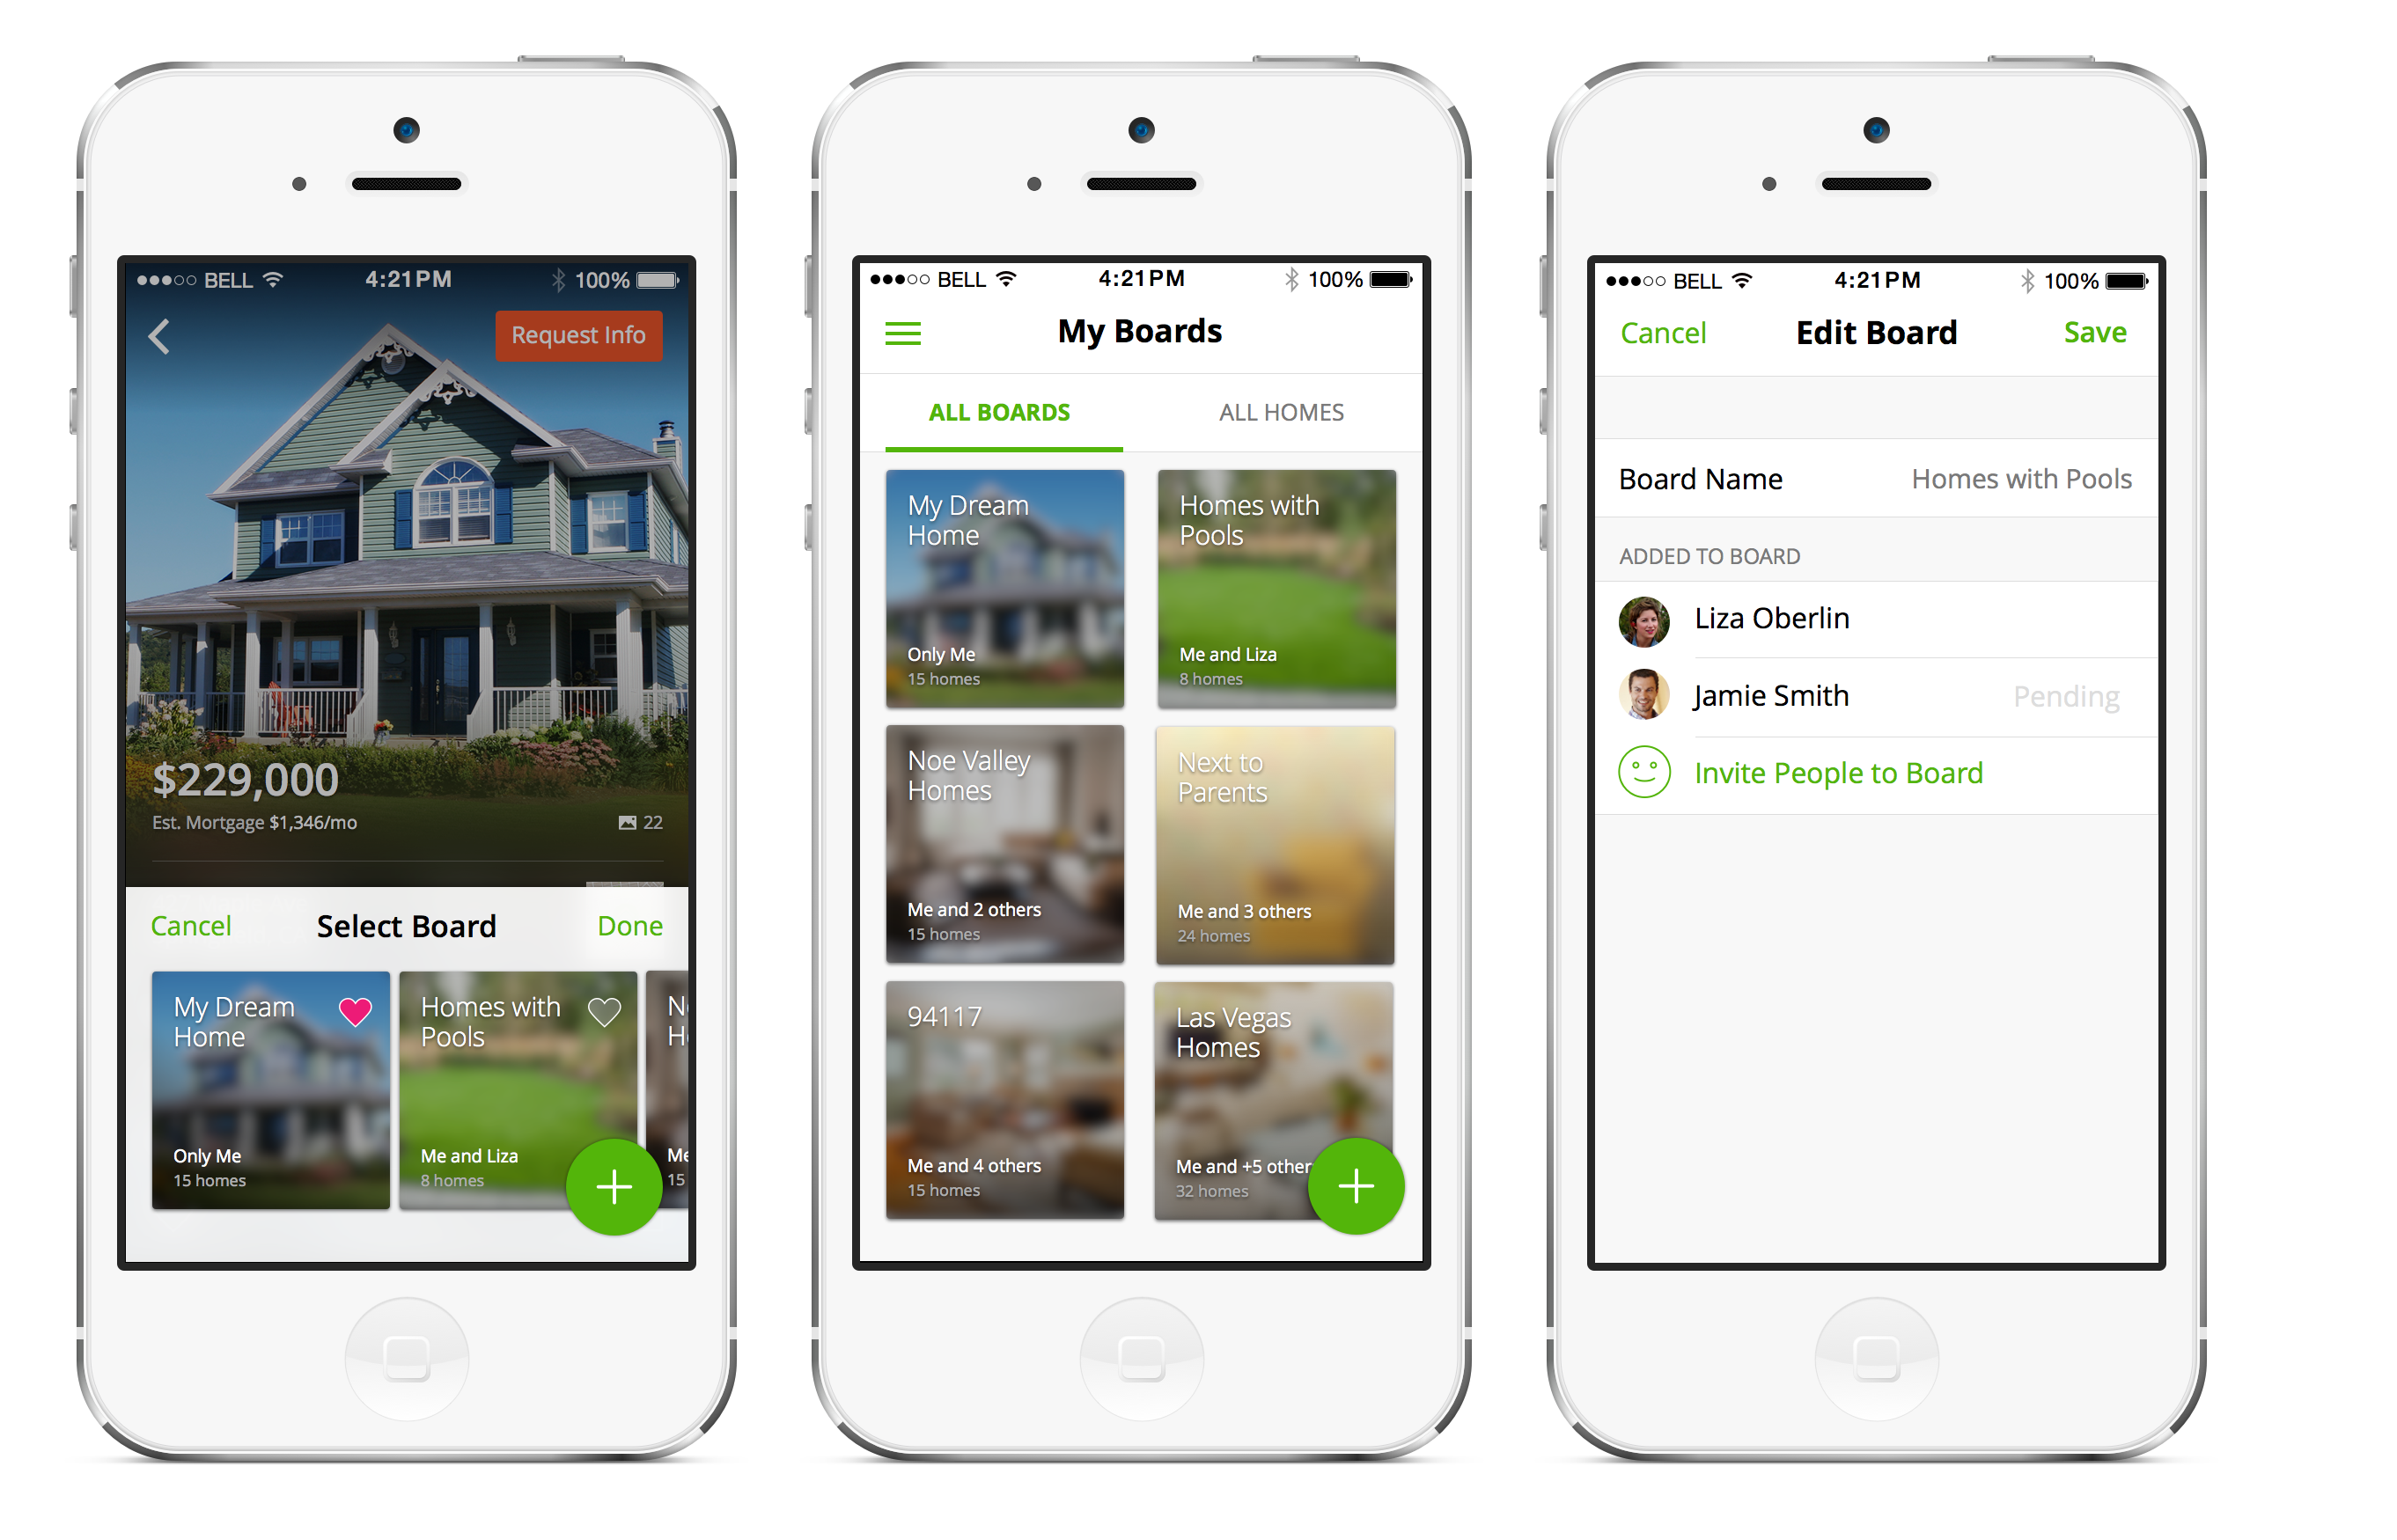 The Pinterest of Home Searching